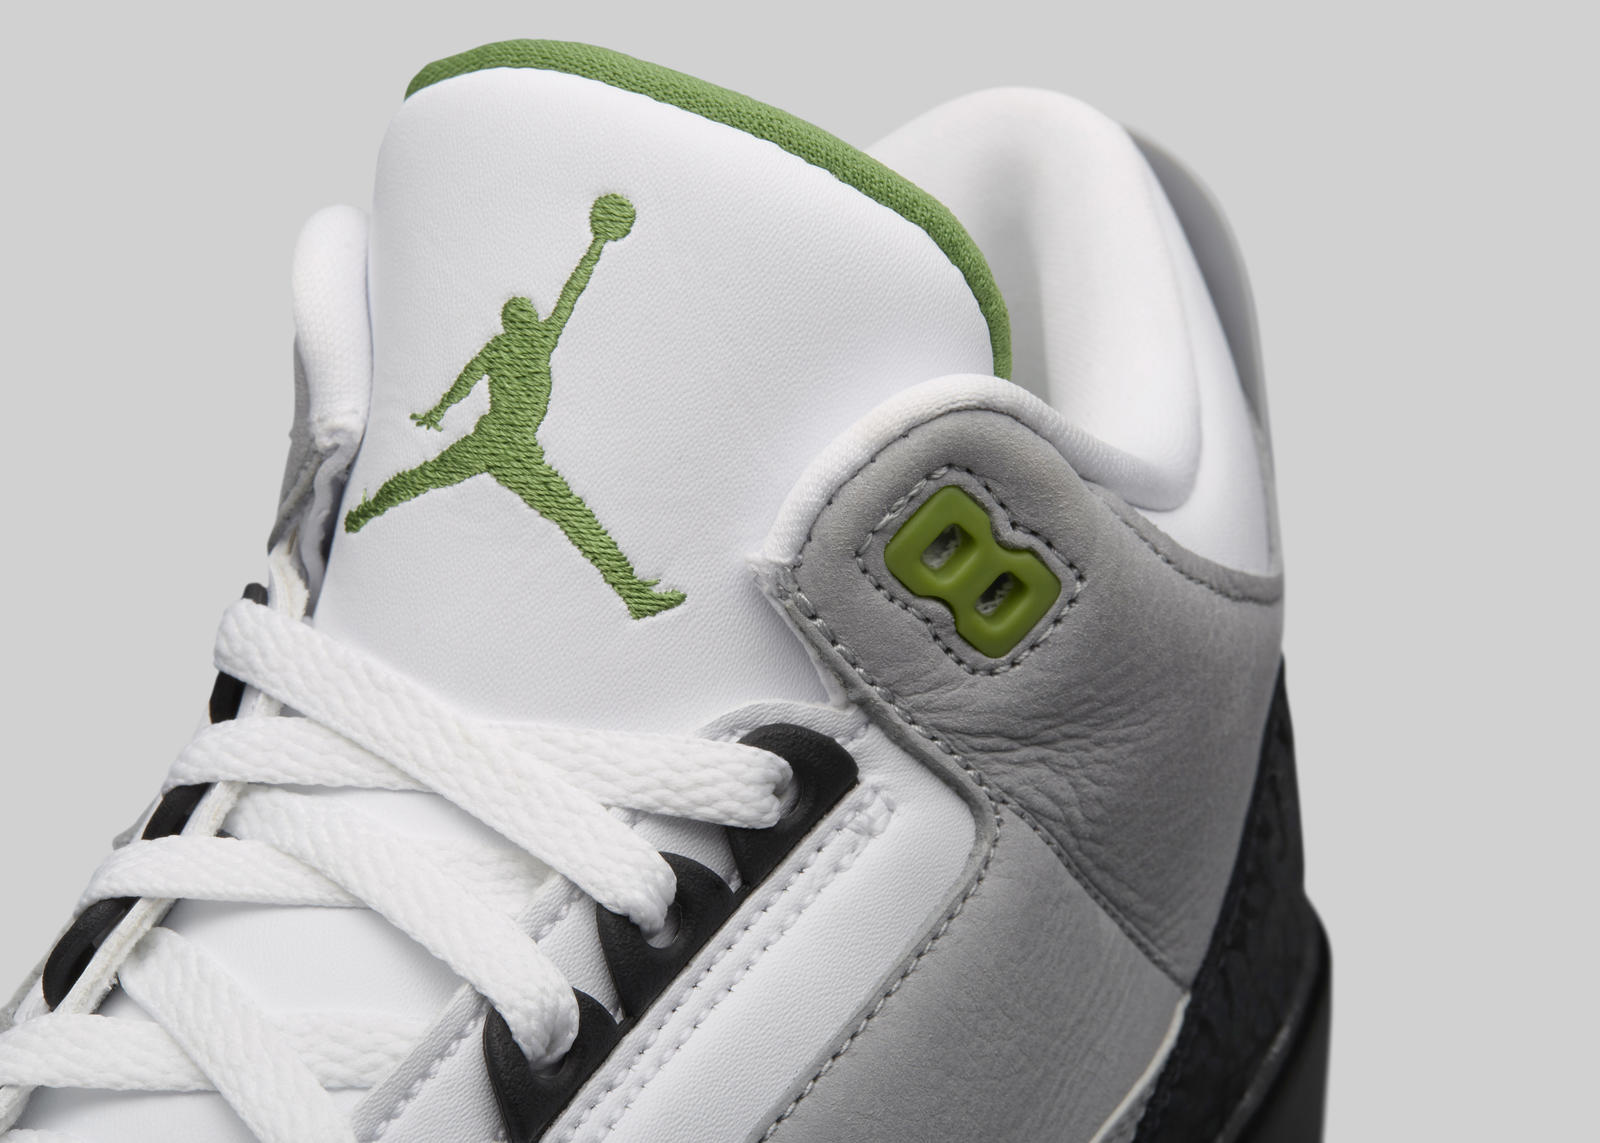 sports shoes b0be6 8f1a7 Jordan Brand 2018 Holiday Preview 5